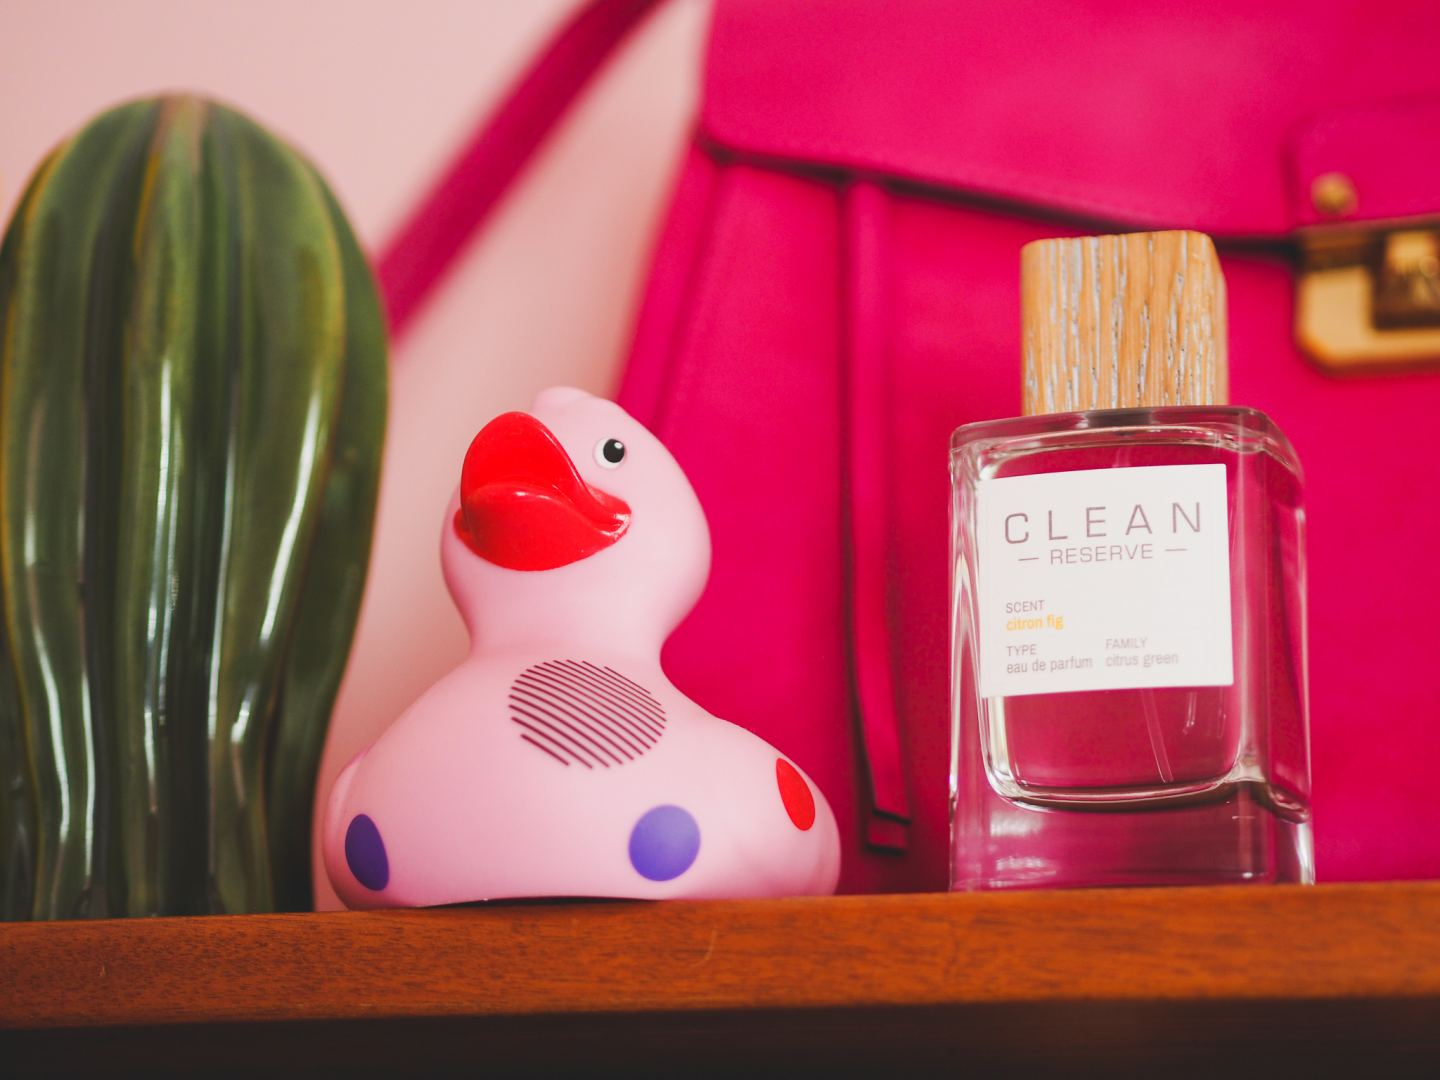 Clean reserve citron fig perfume review